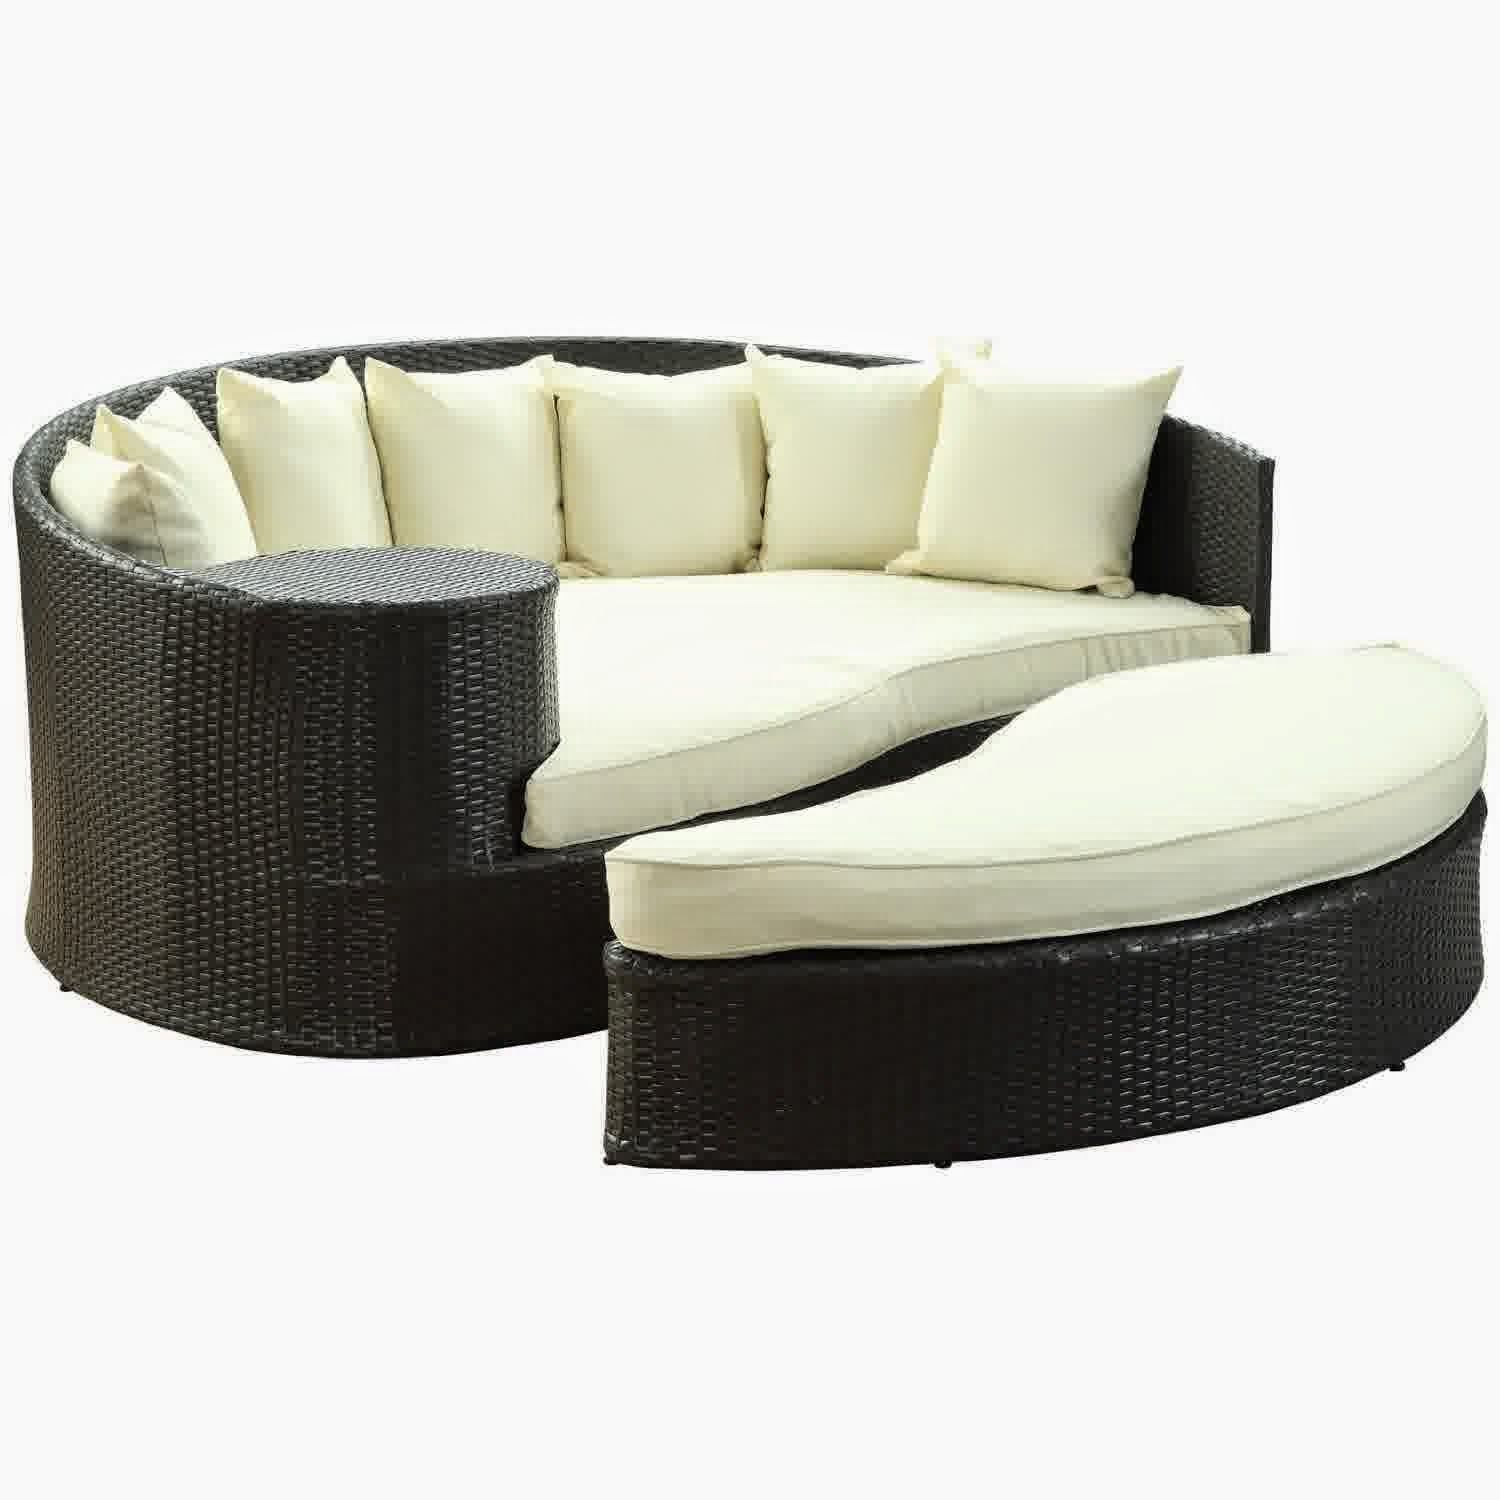 Lexmod Taiji Outdoor Wicker Patio Daybed With Ottoman In Espresso With White Cushions Outdoor Daybed Patio Daybed Outdoor Furniture Sofa